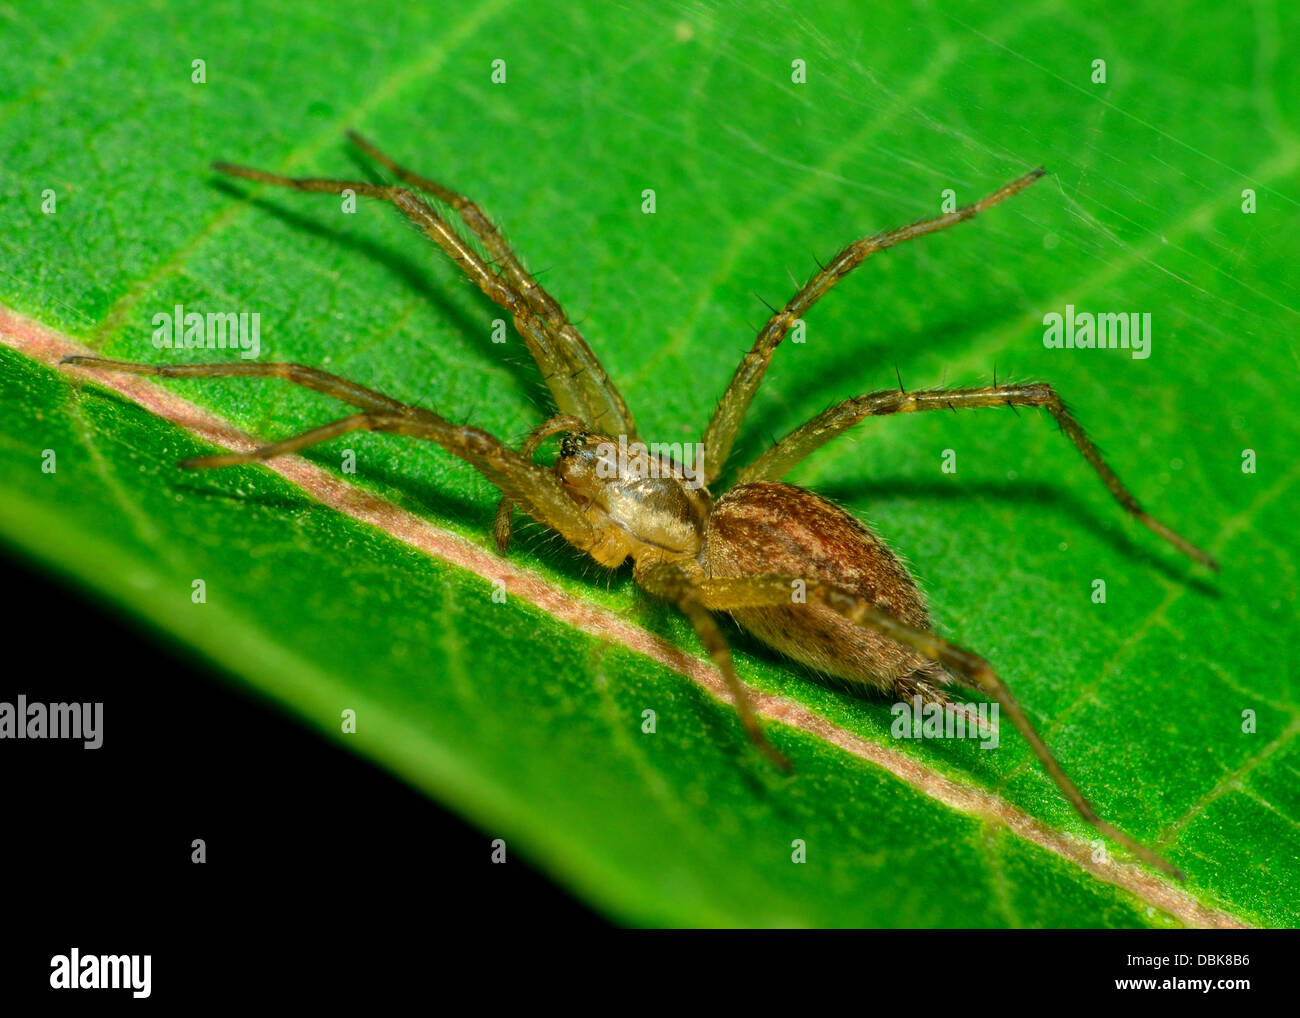 A wolf spider perched on a green milkweed leaf. - Stock Image